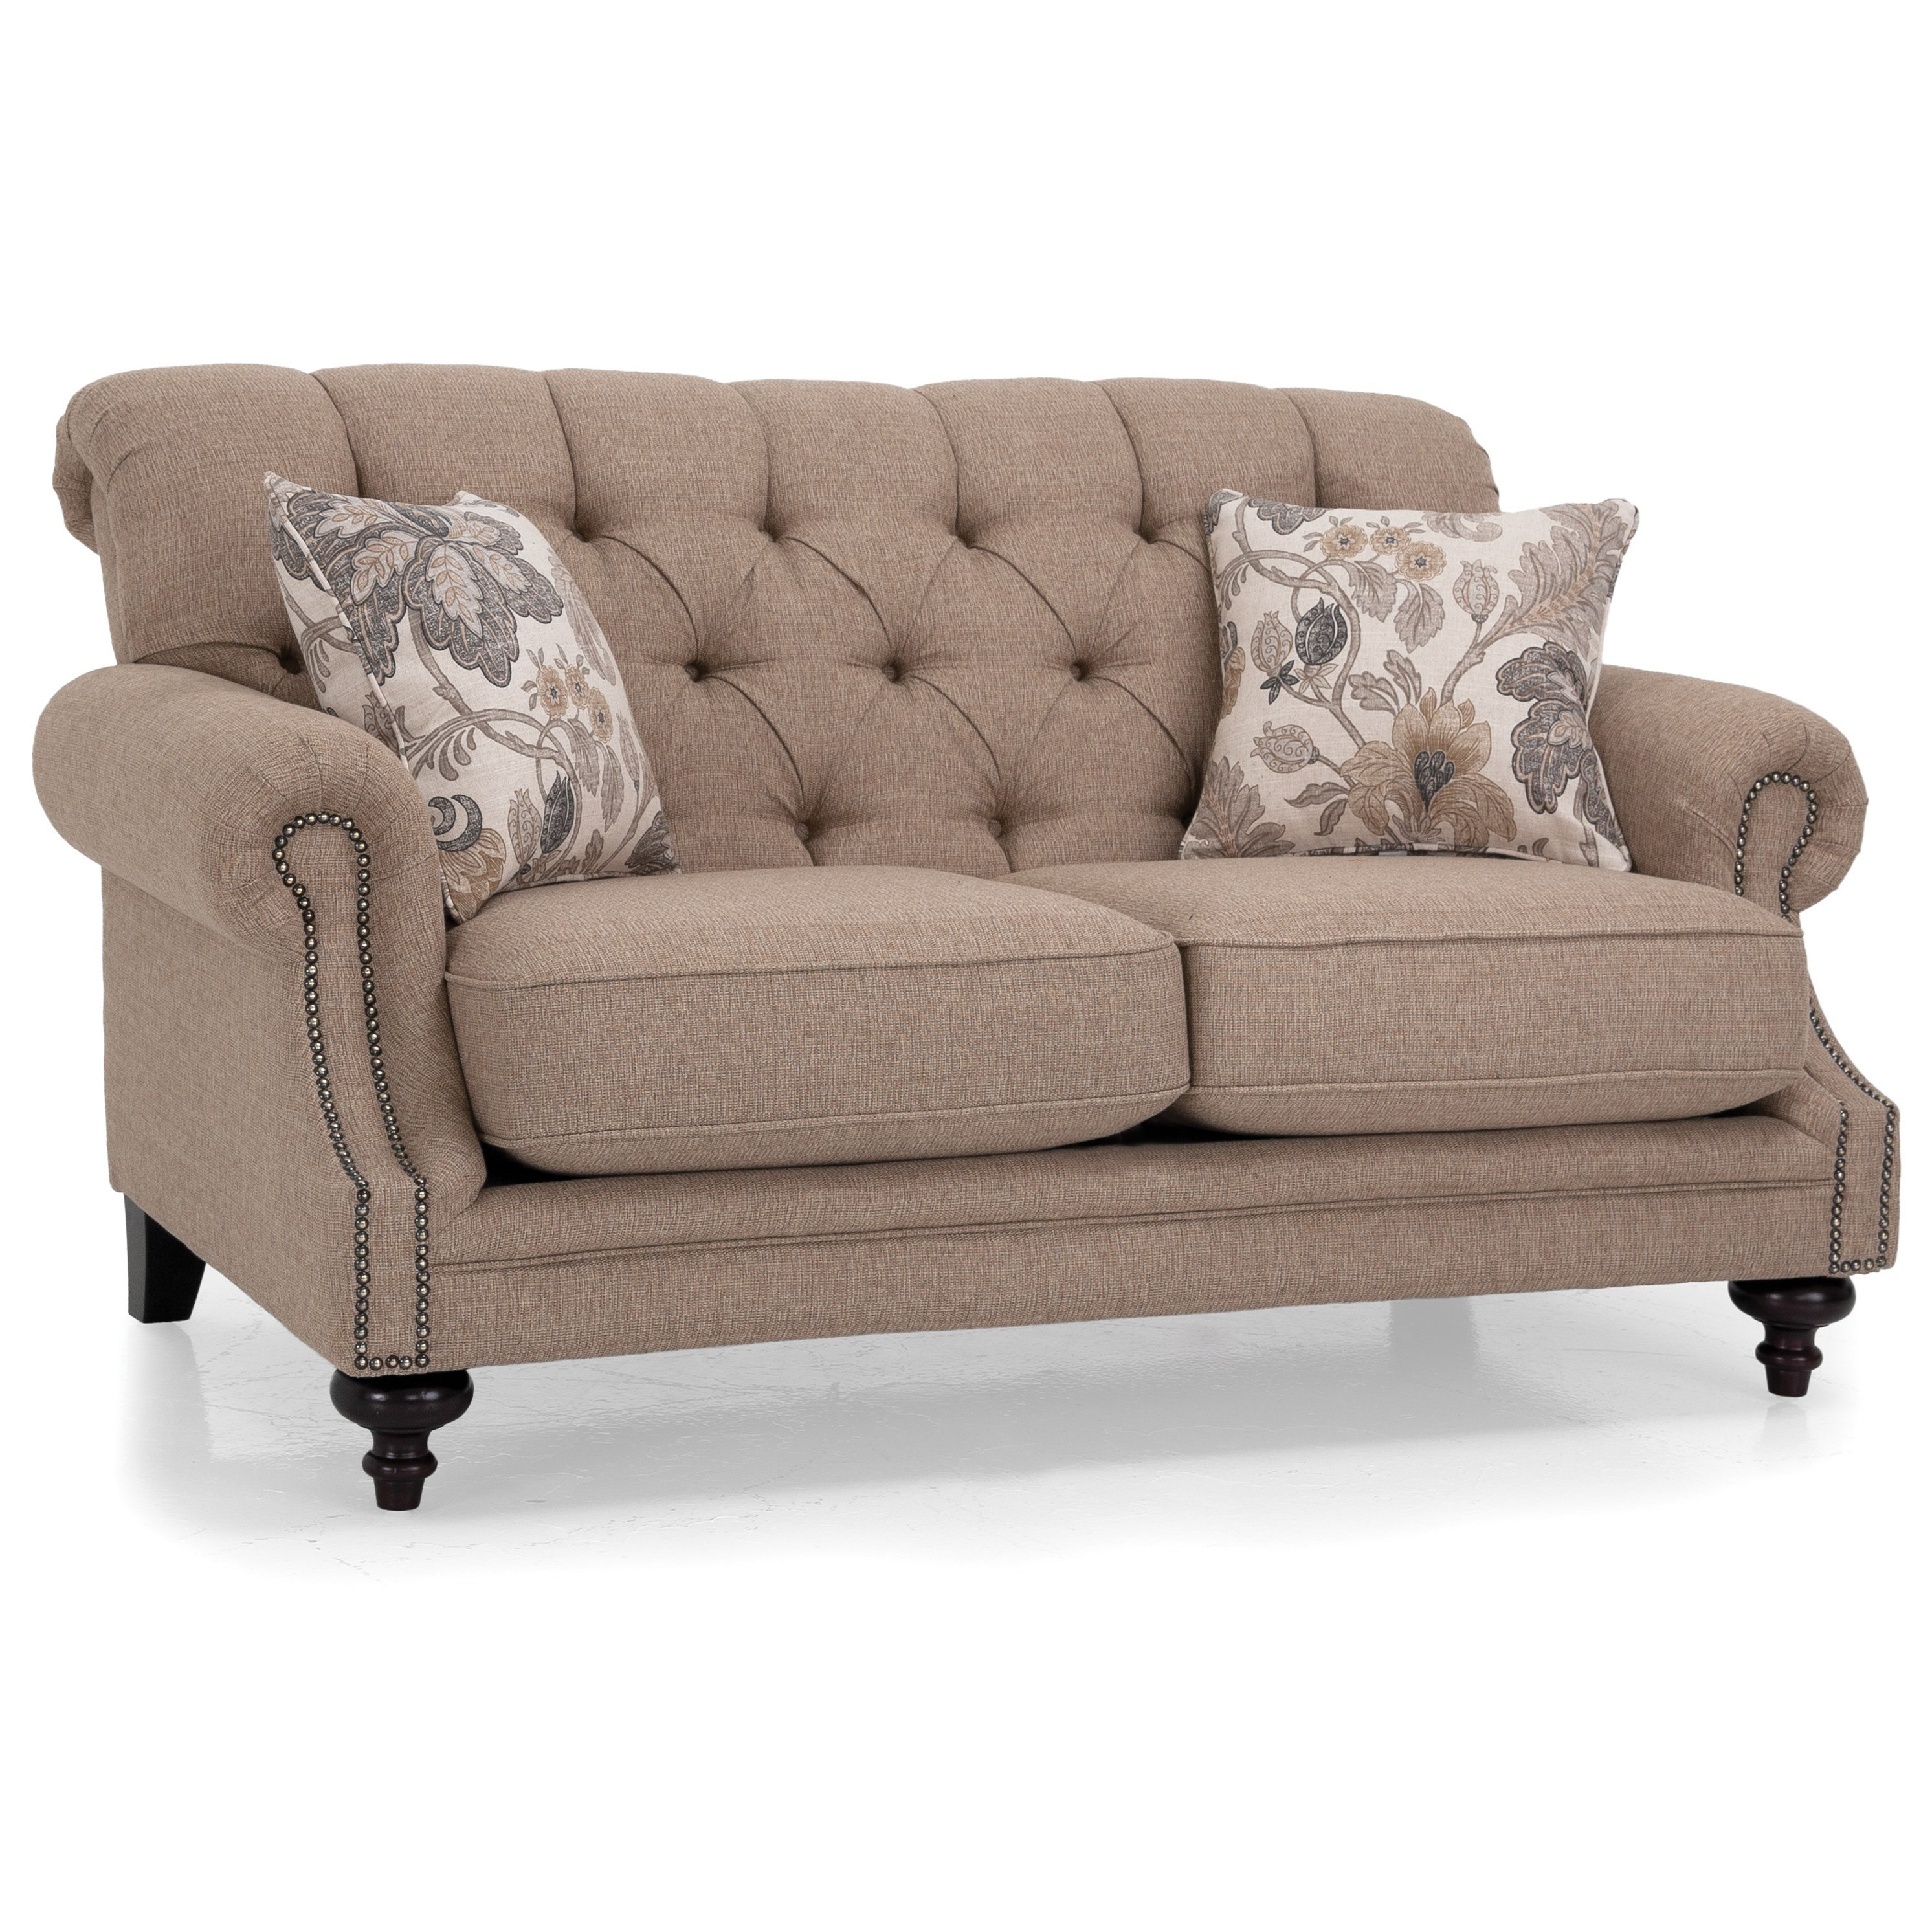 2133 Loveseat by Decor-Rest at Rooms for Less